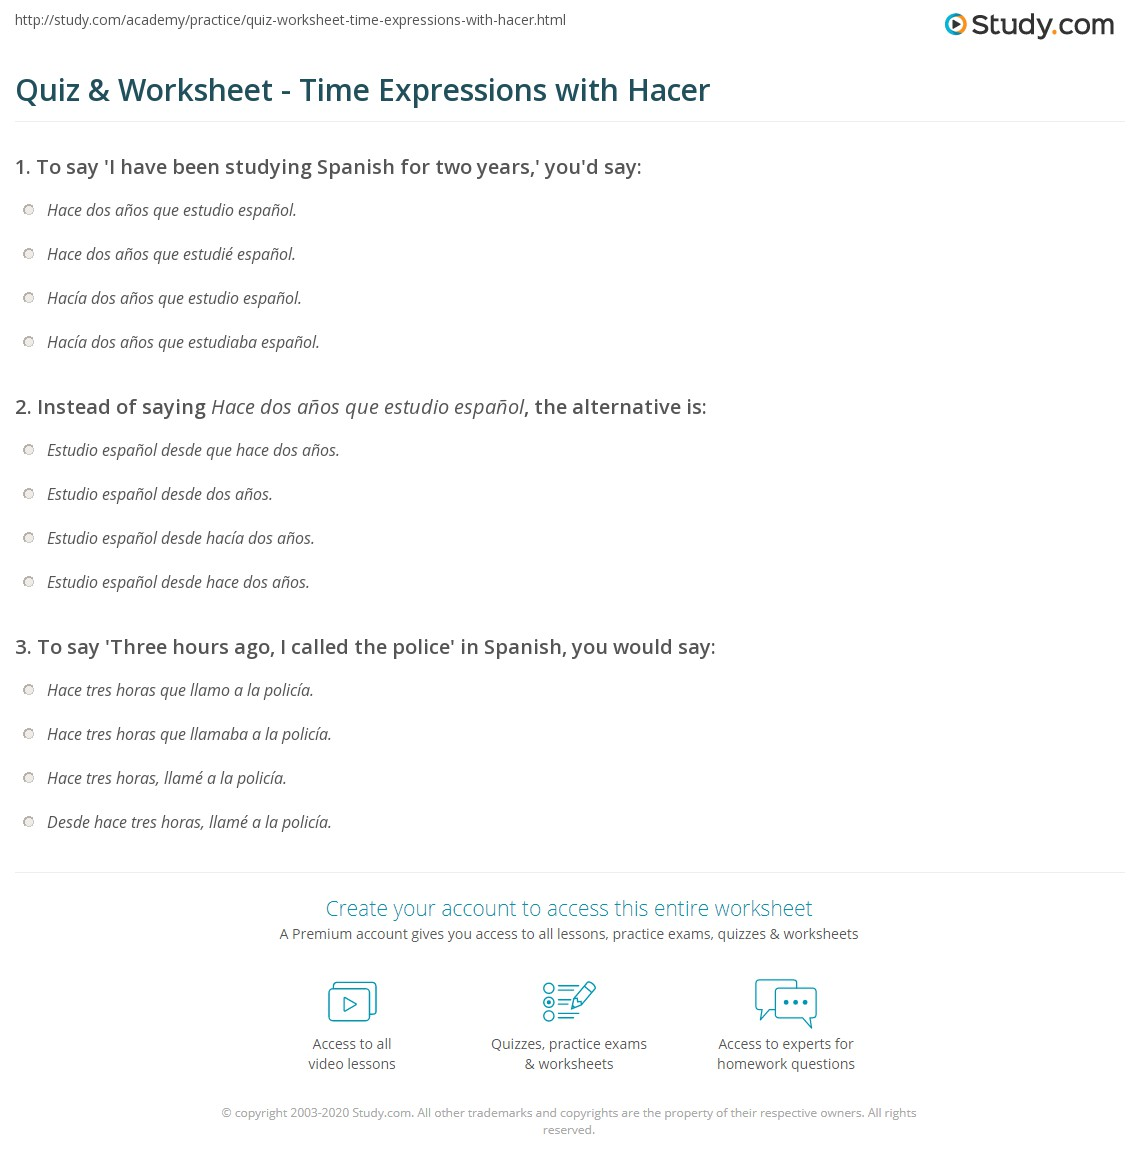 Quiz & Worksheet - Time Expressions with Hacer | Study com